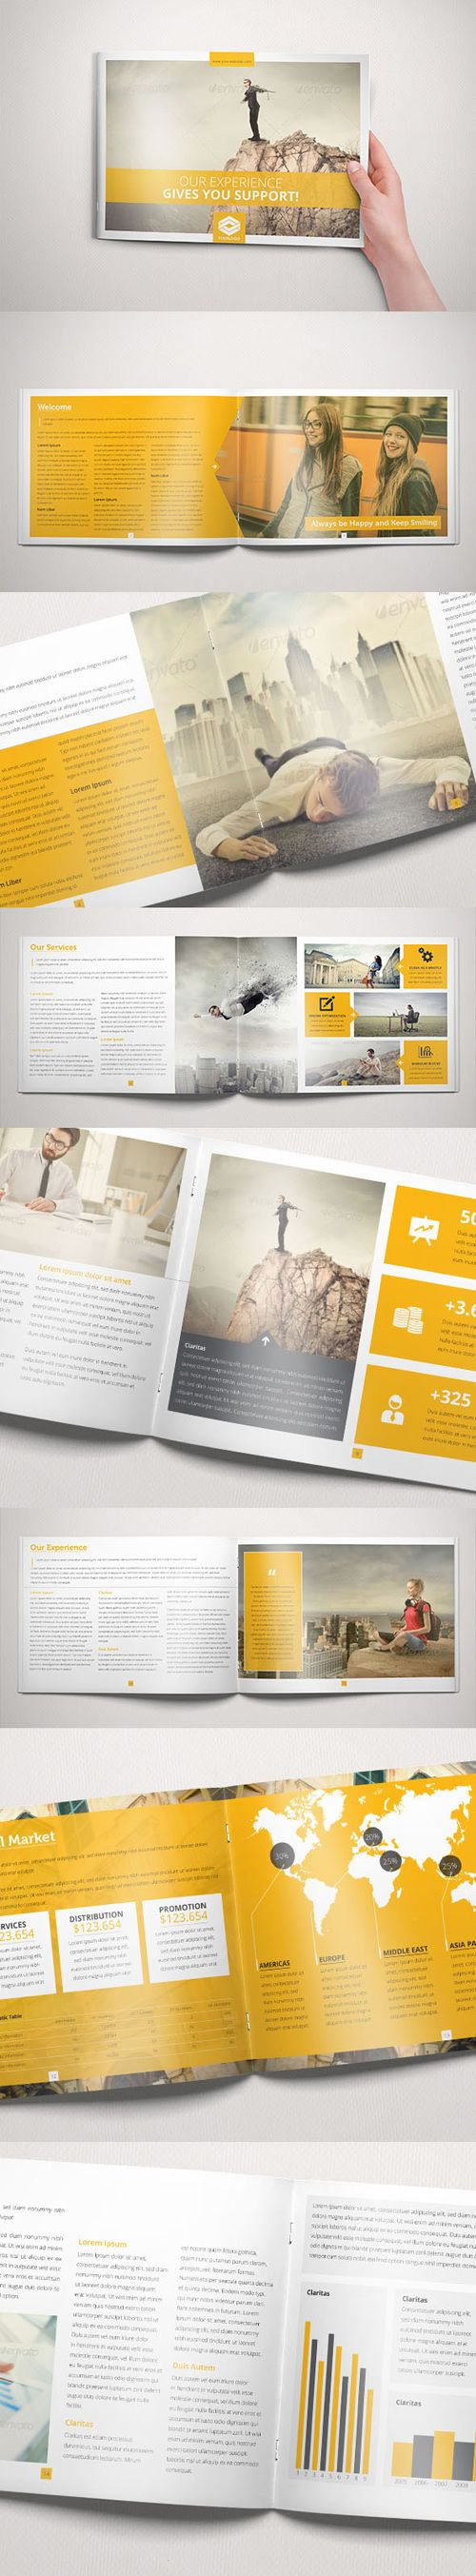 best ideas about report design annual report 17 best ideas about report design annual report design layout design and print layout